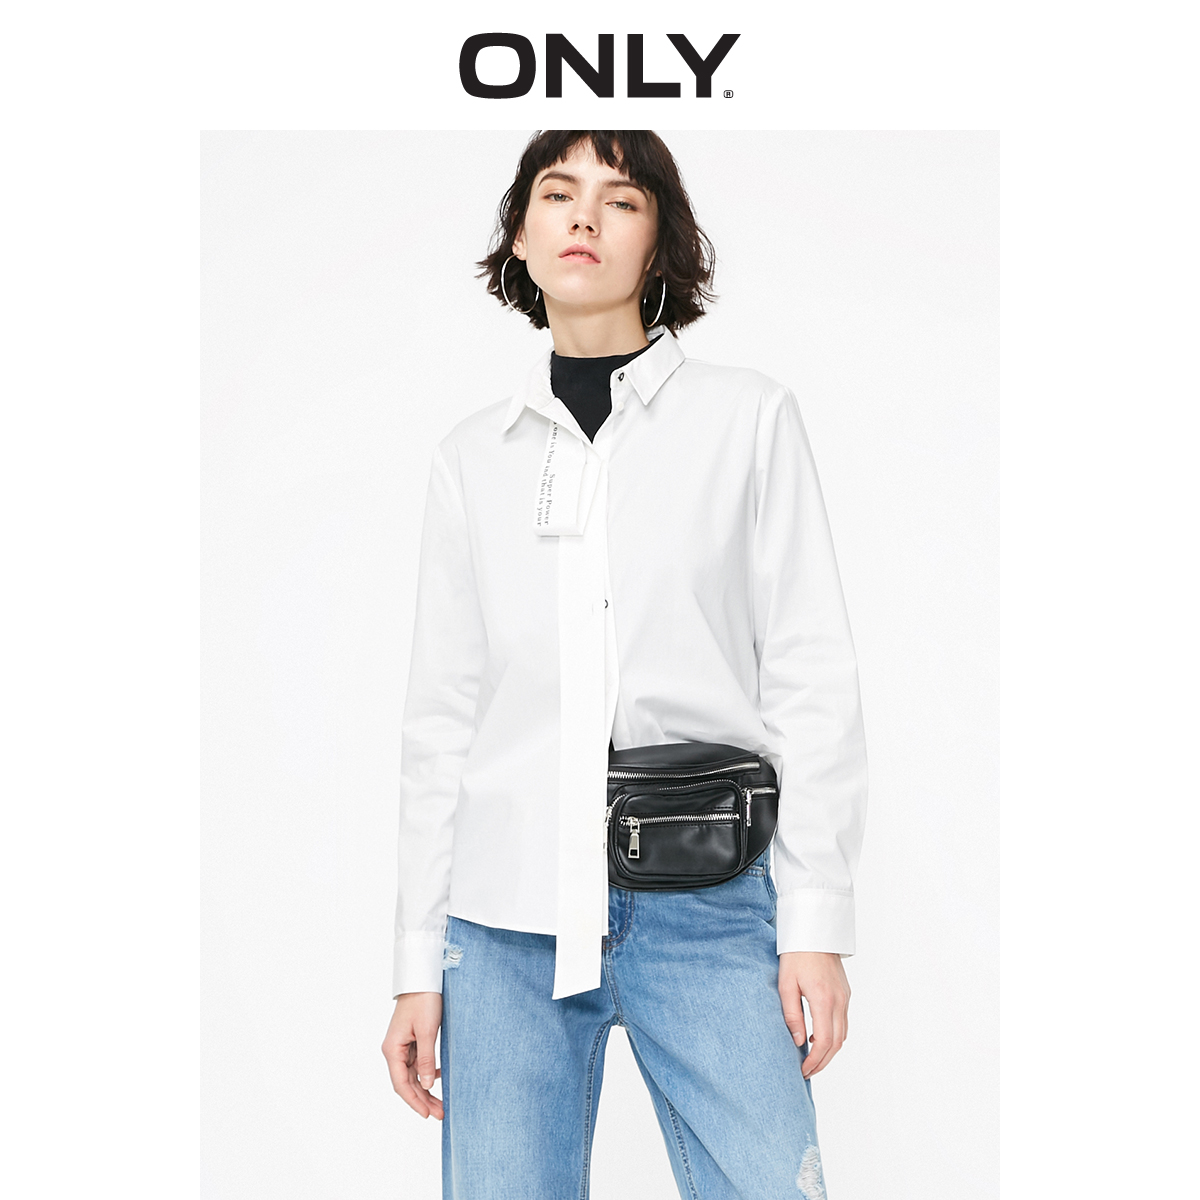 ONLY  Women's Loose Fit Letter Ribbons White Long-sleeved Shirt | 119105528